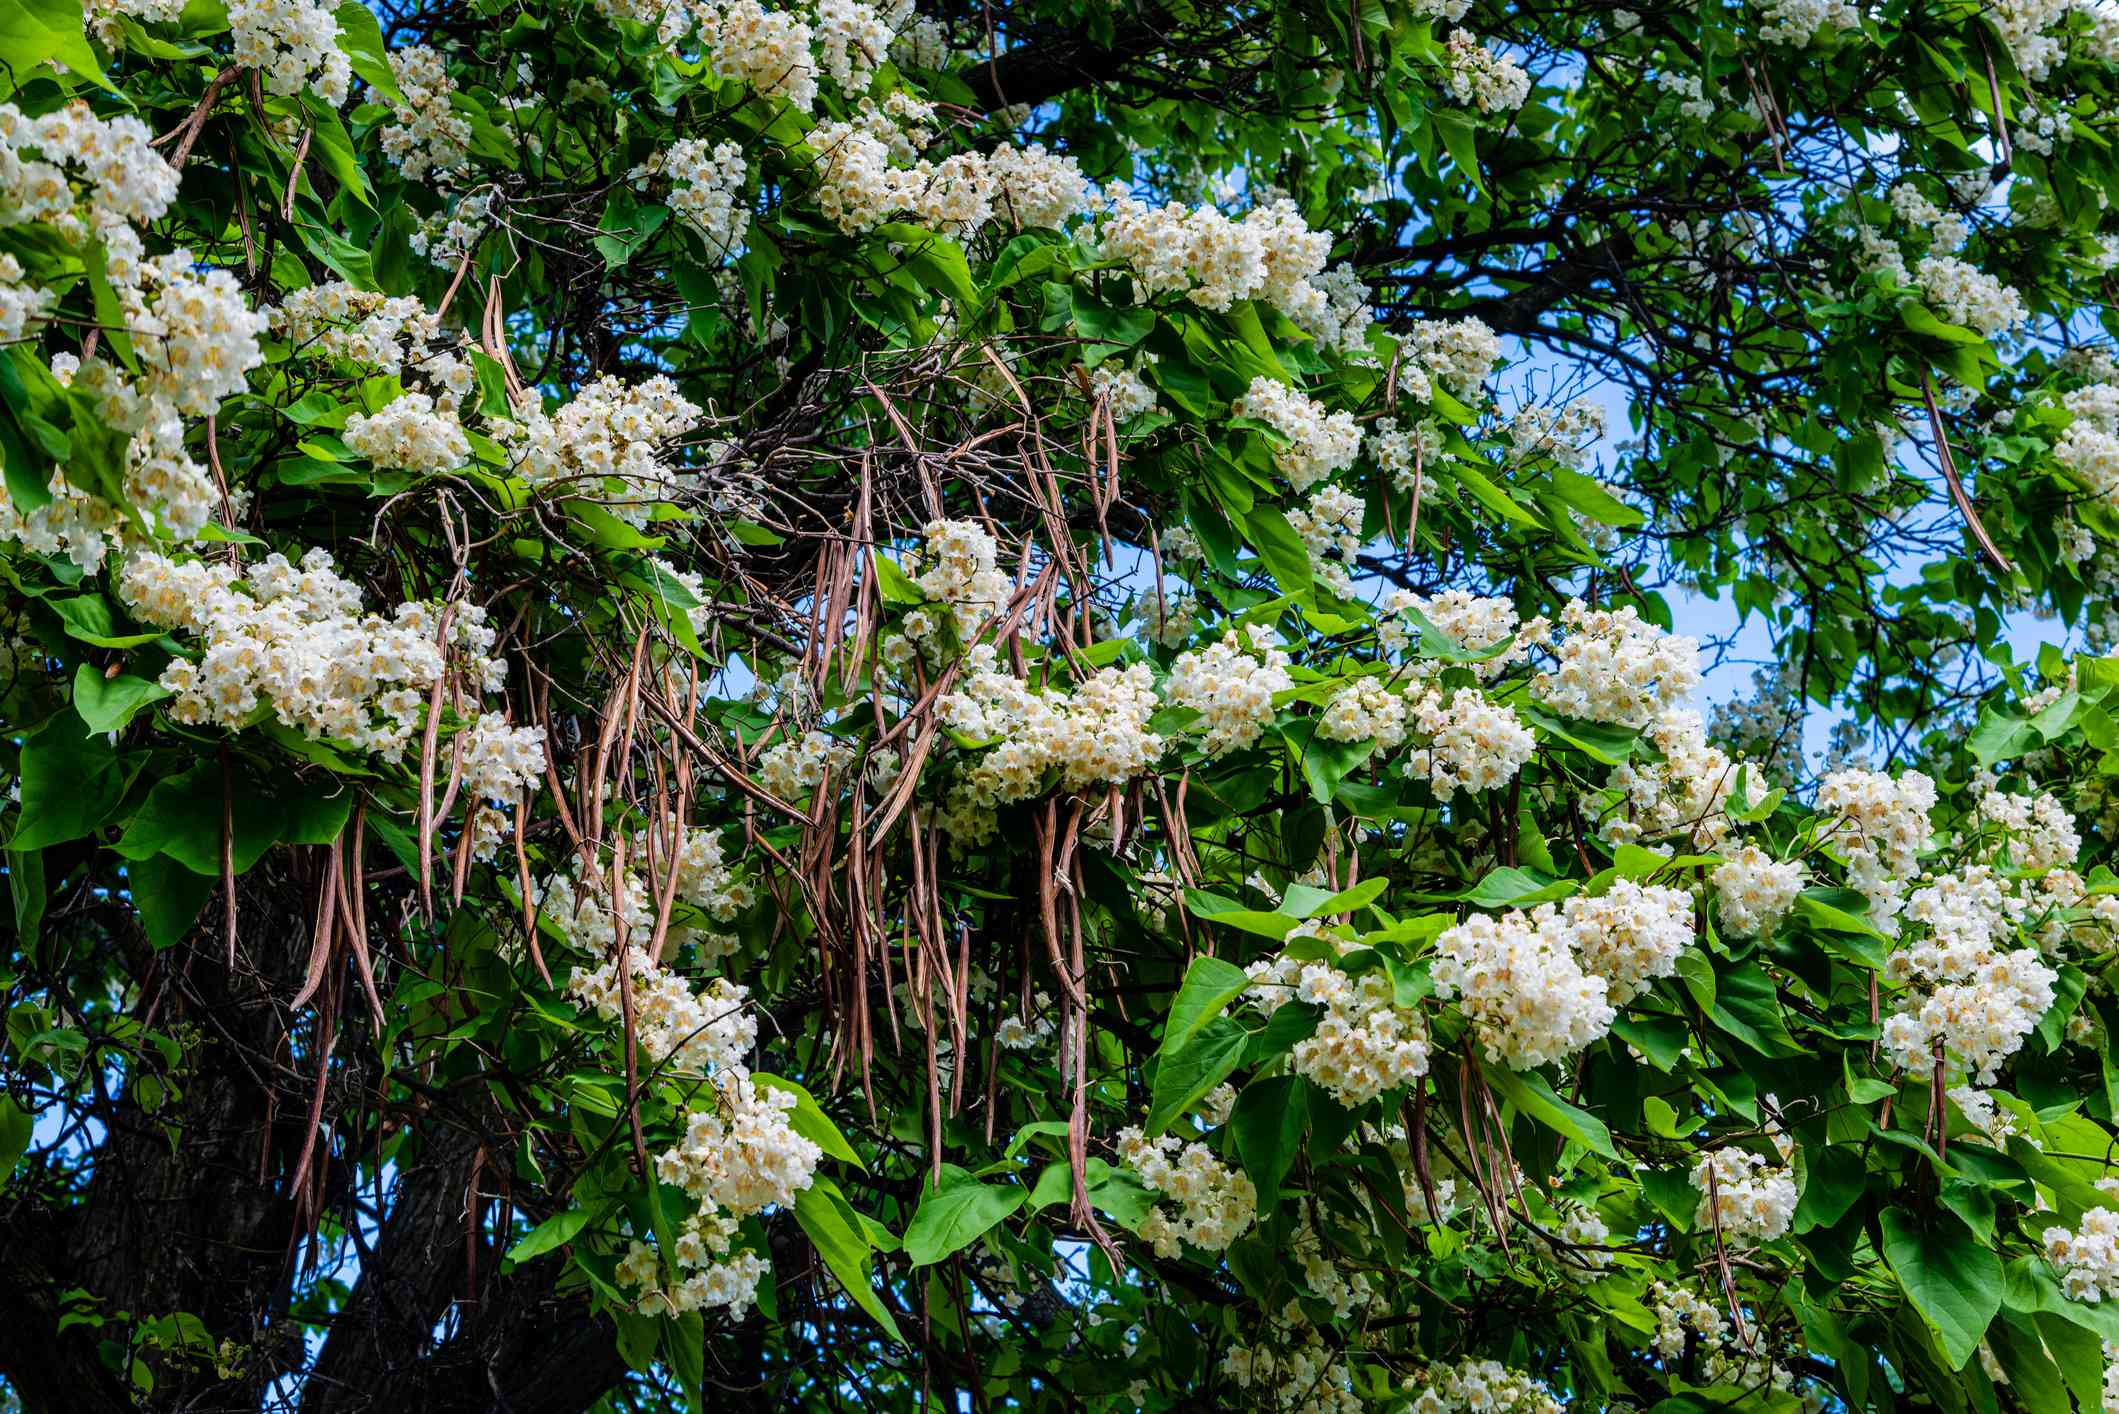 Northern catalpa with white flower clusters and large green leaves in bloom